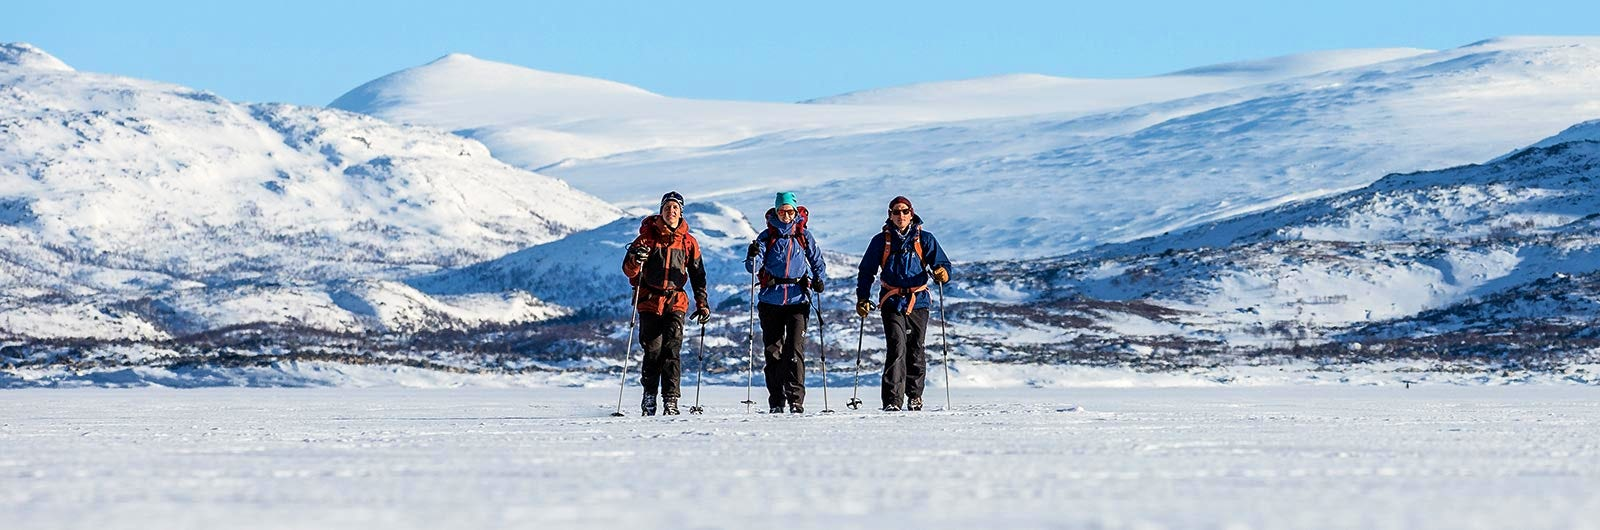 Three friends skiing in the mountains